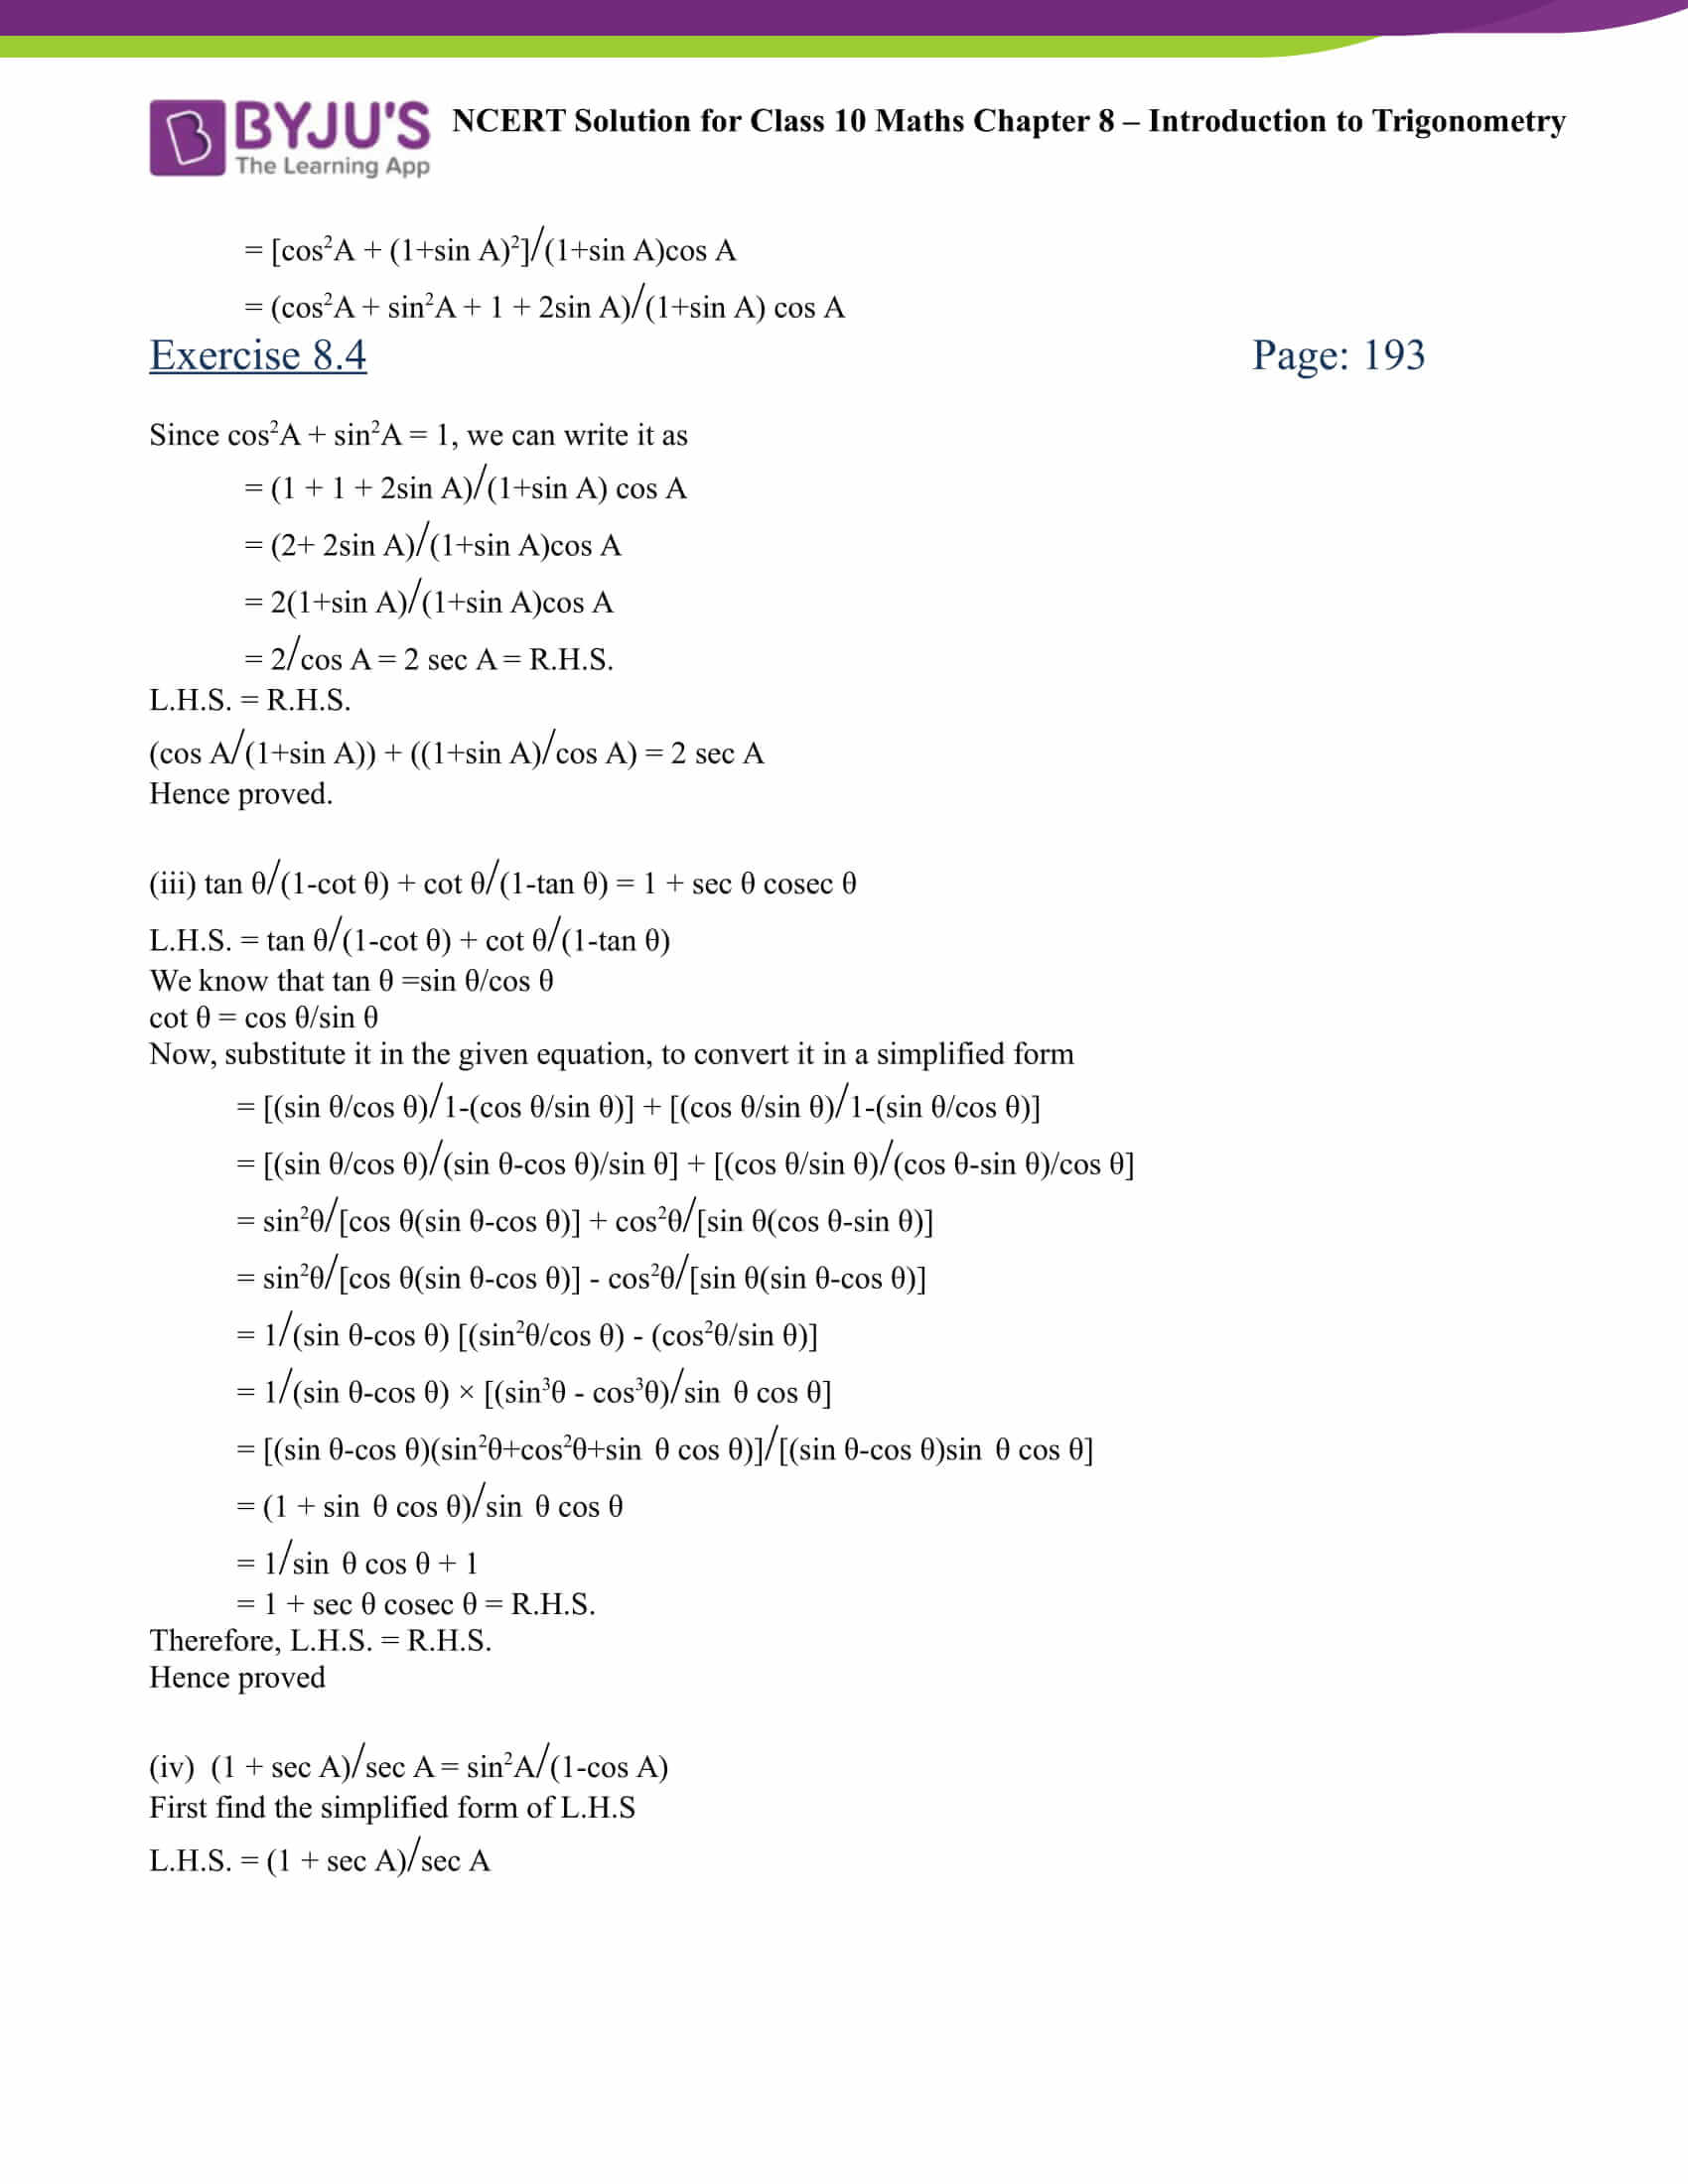 NCERT Solution for class 10 Maths chapter 8 Introduction to Trigonometry Part 25